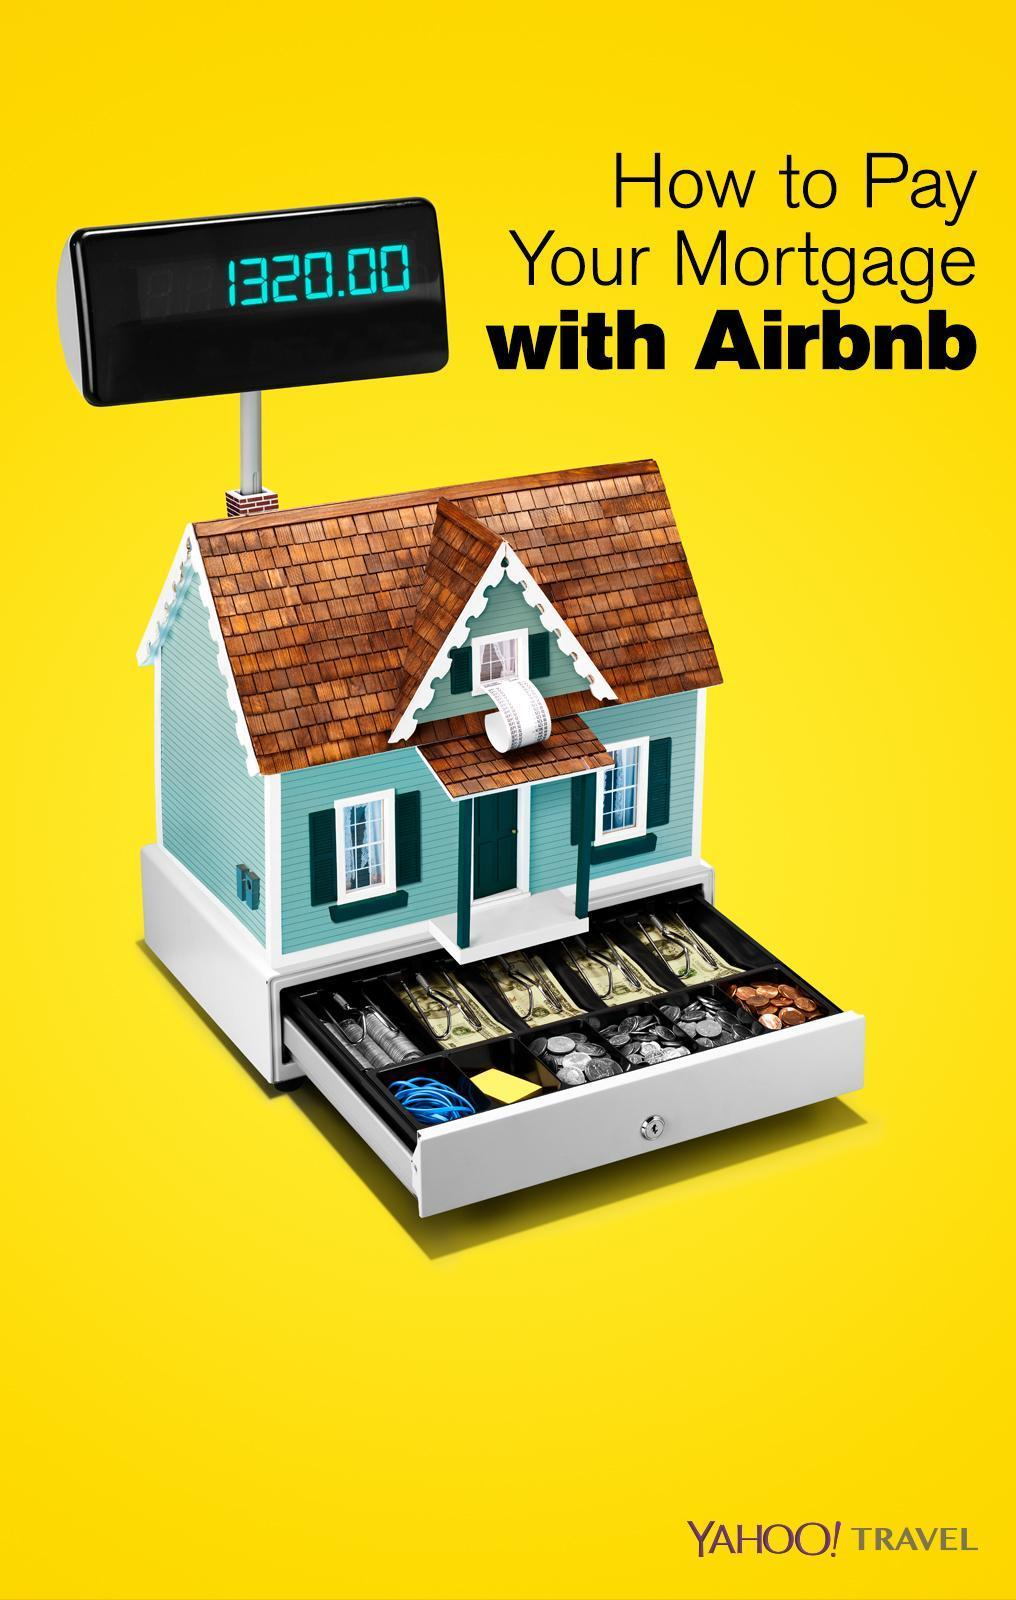 Payment in instalments - Airbnb Community